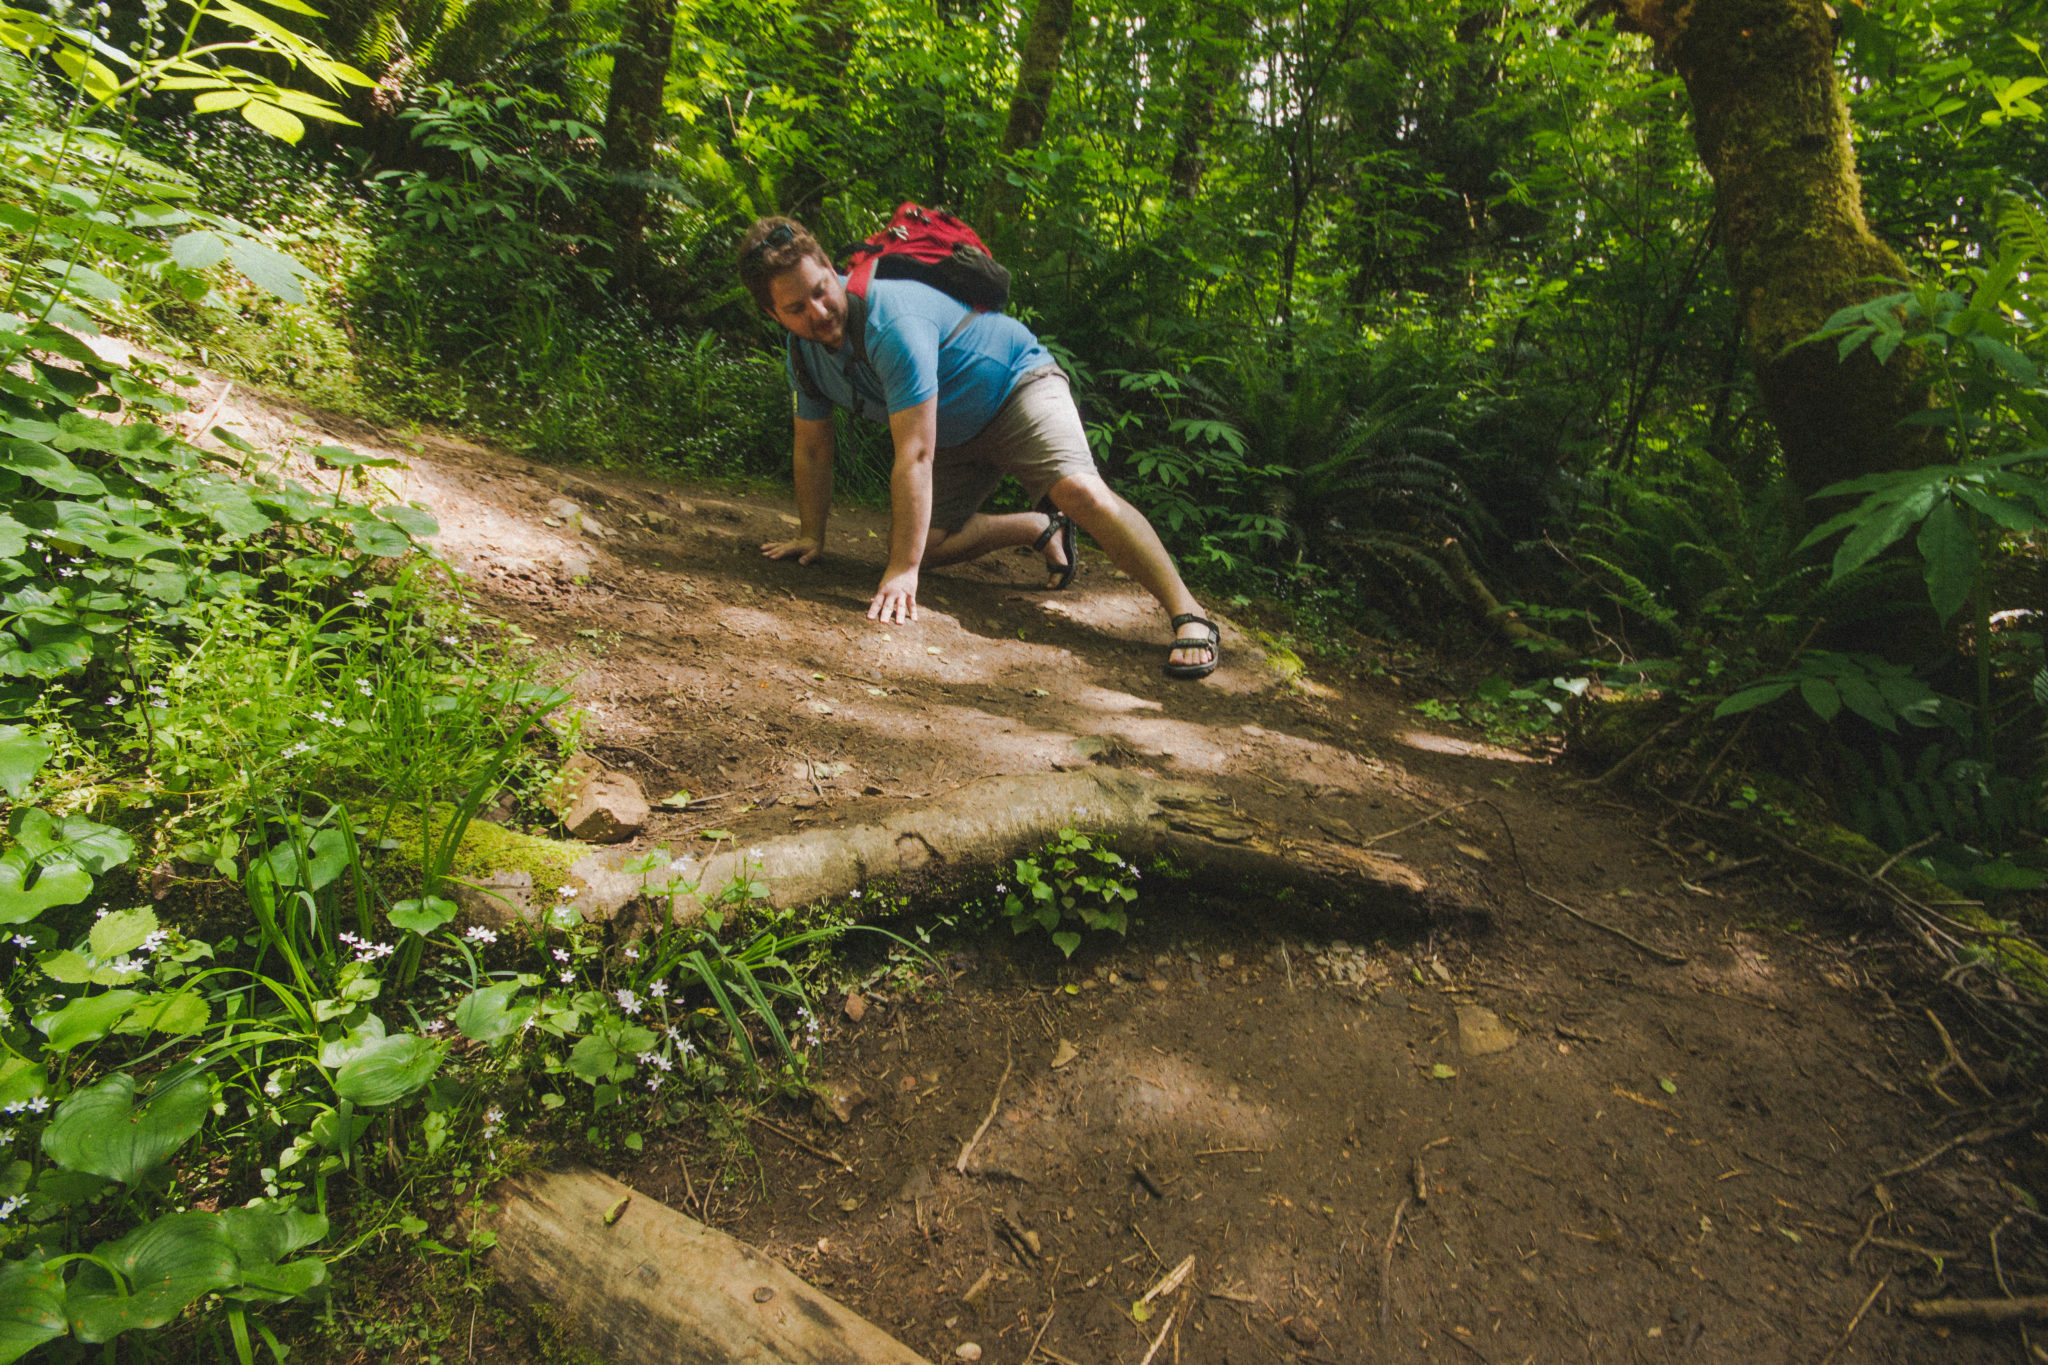 Nick-sliding-down-Crescent-Beach-Trail